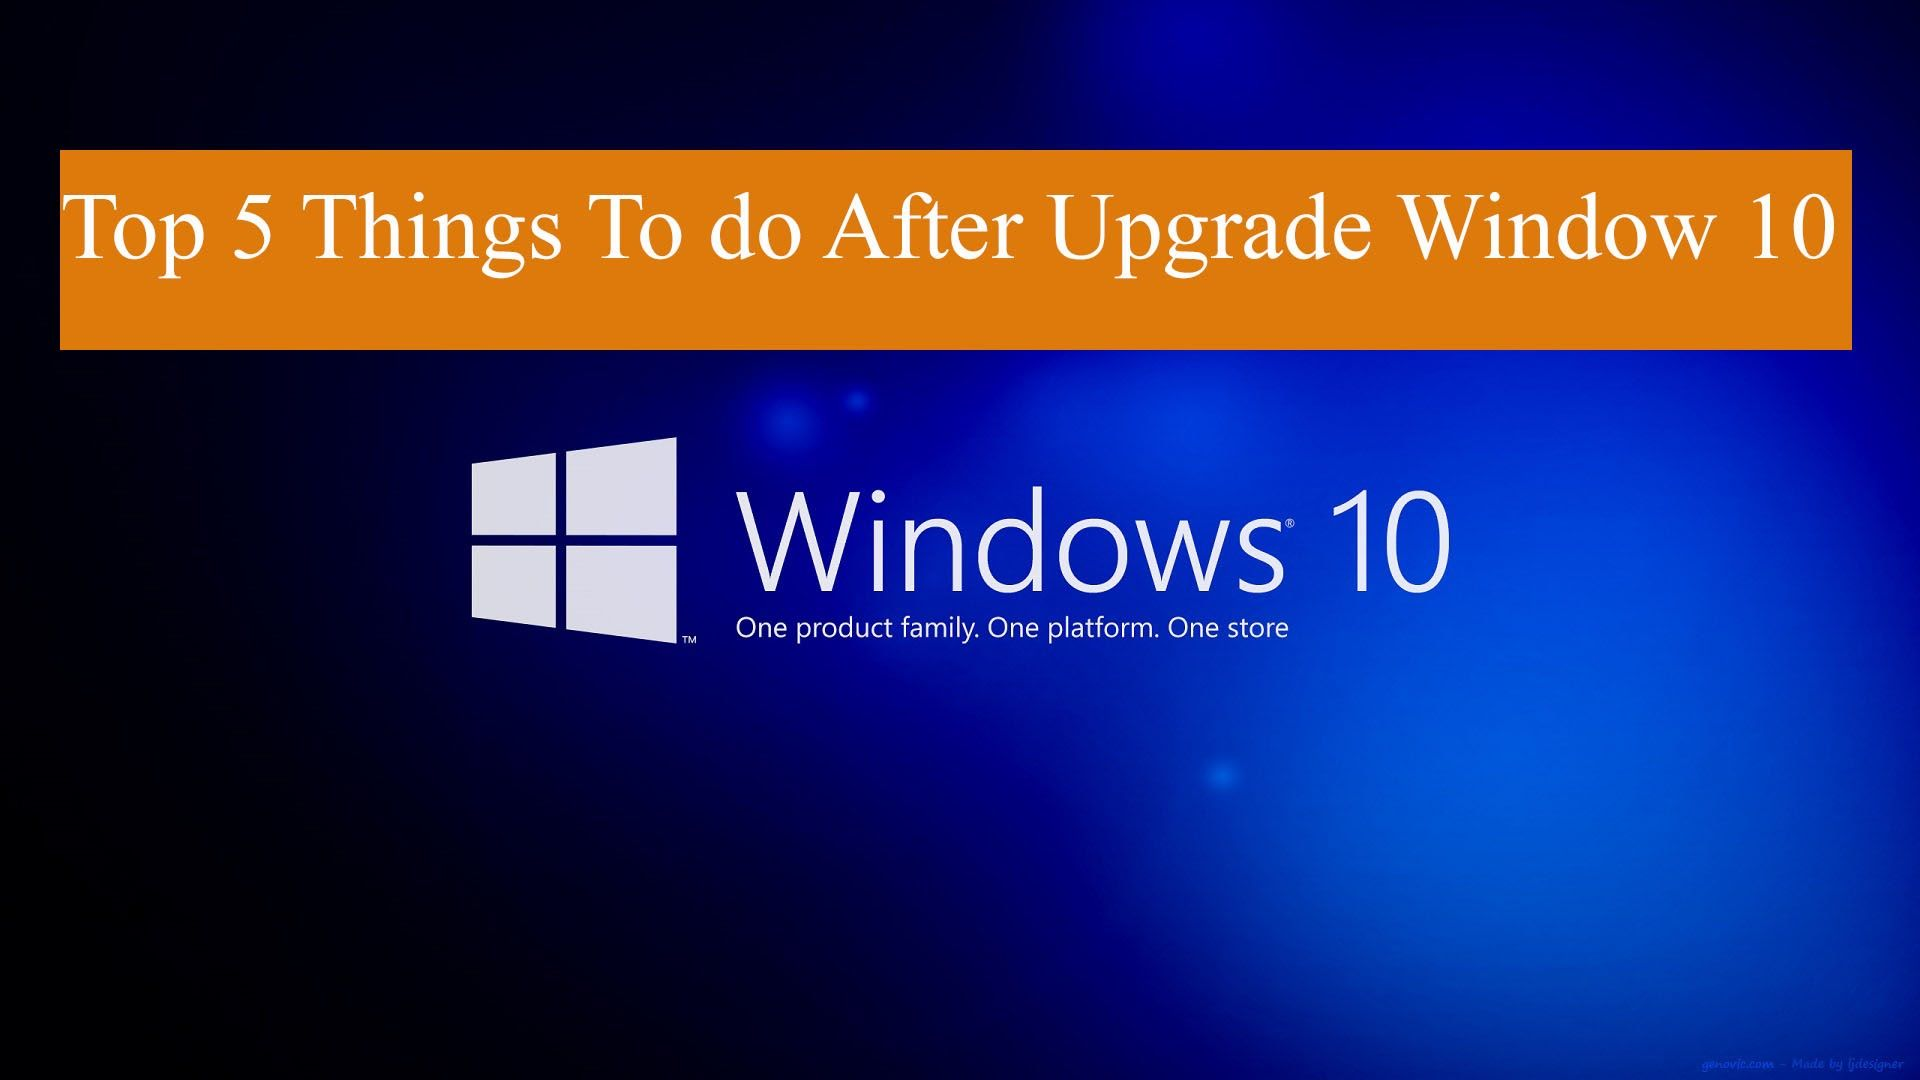 Top 5 Things to do after Install /Upgrade window 10